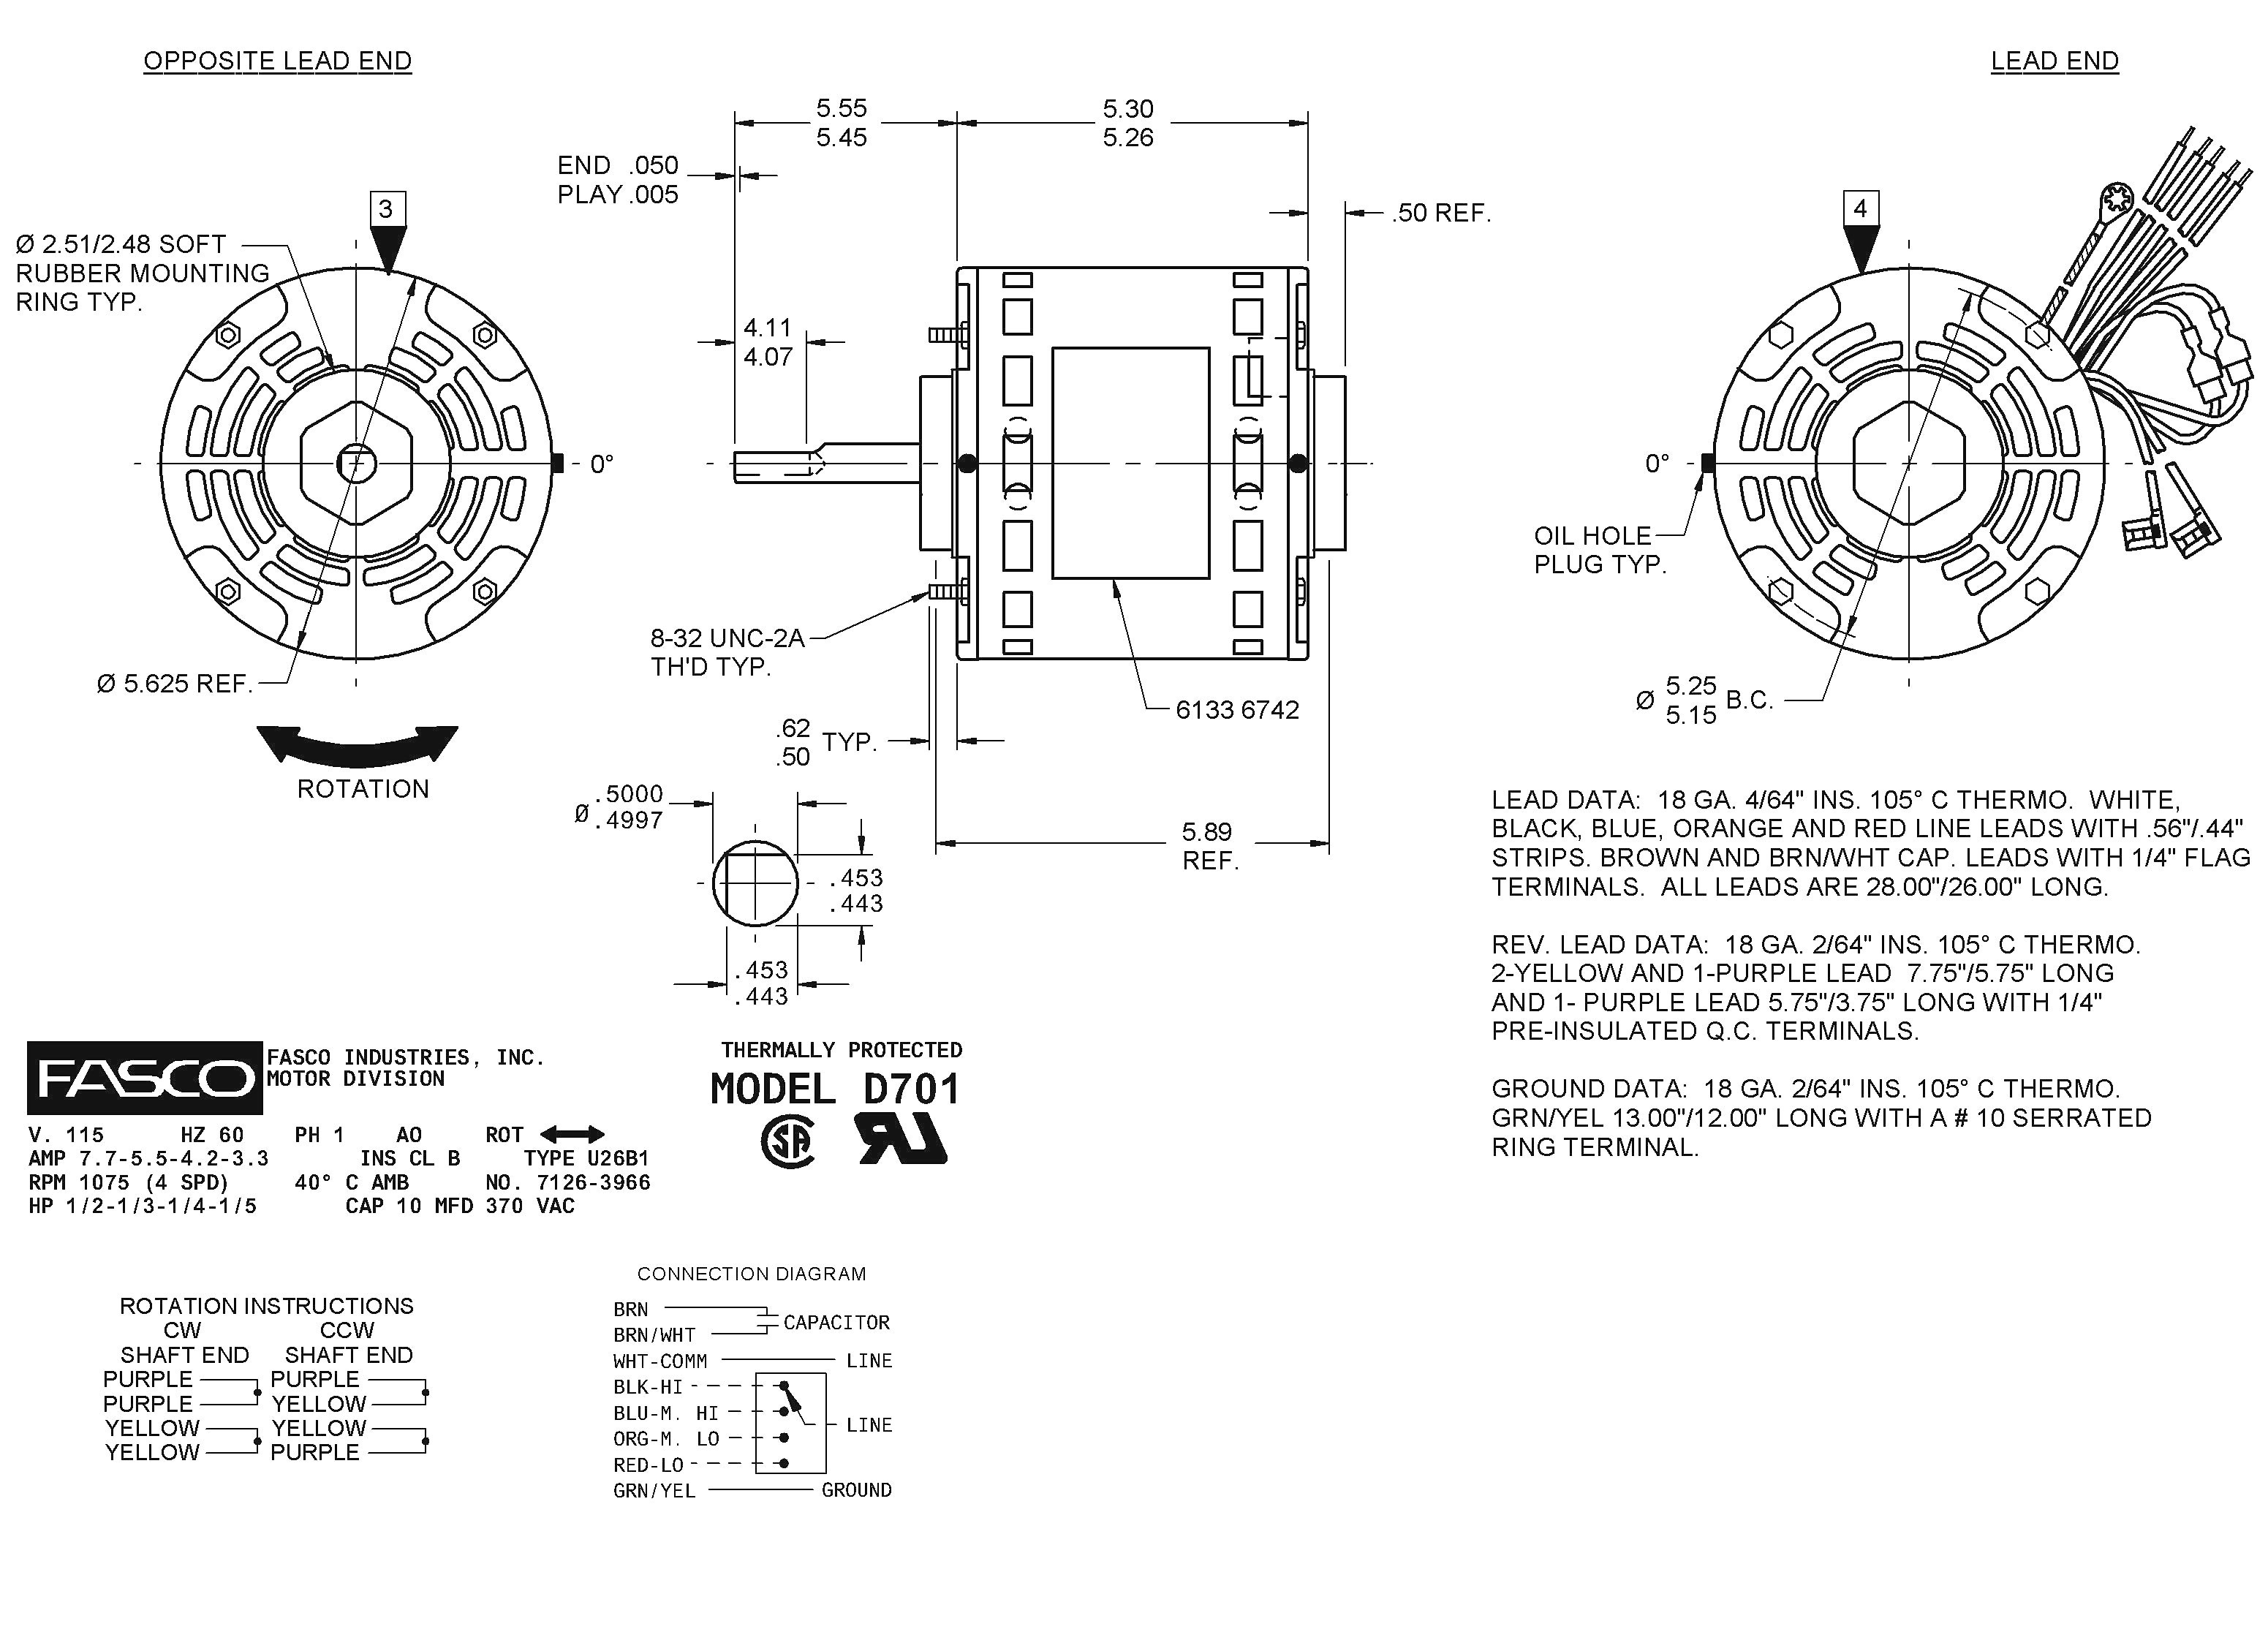 emerson motor wiring diagram Collection-Emerson Wiring Diagram Electric Motor Best Inspiration 12-l